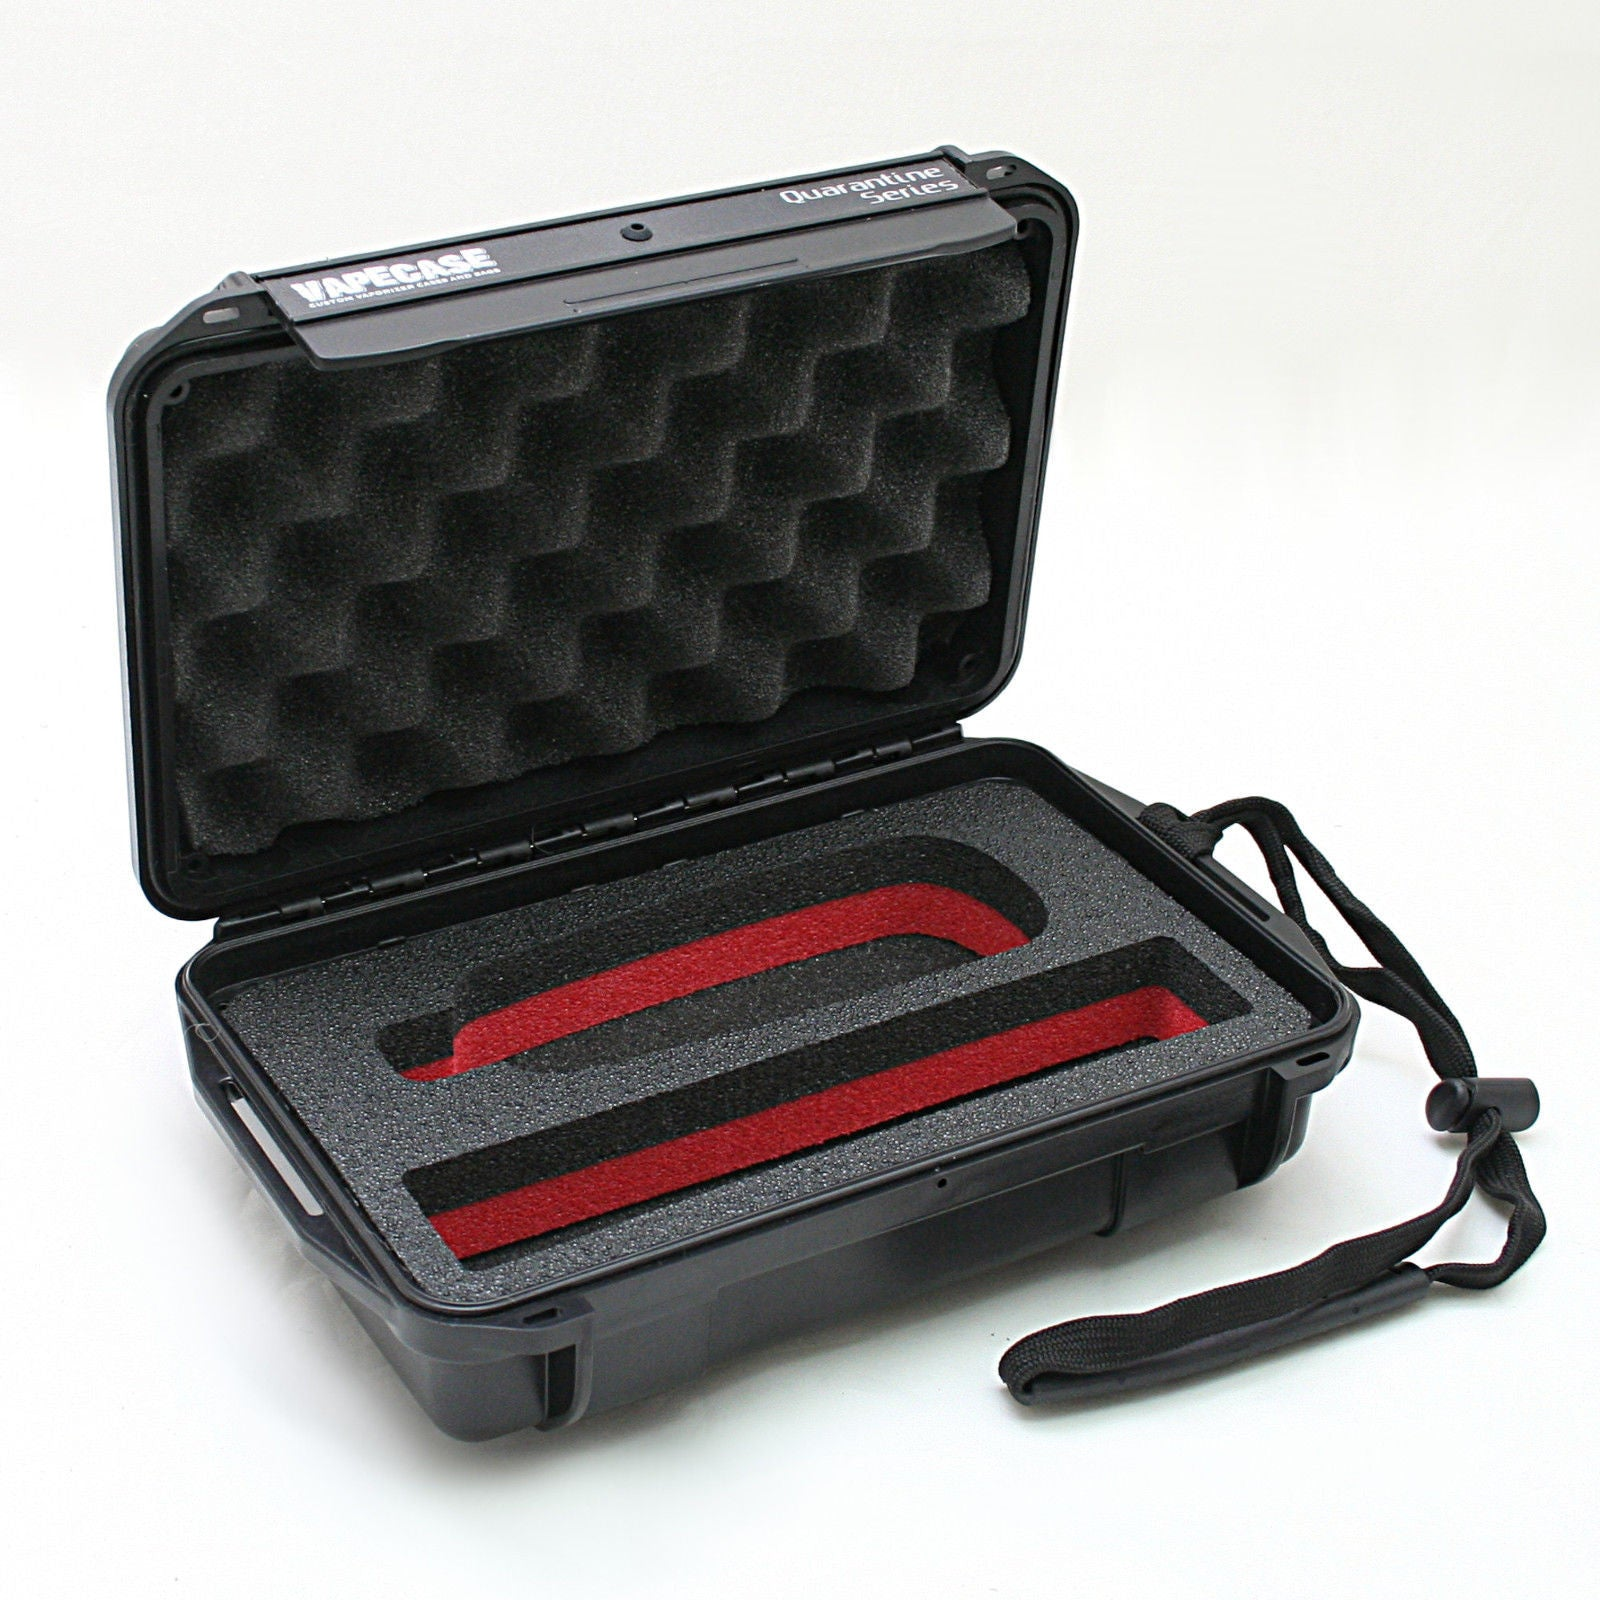 DISCONTINUED VapeCase - Firefly - Quarantine Series